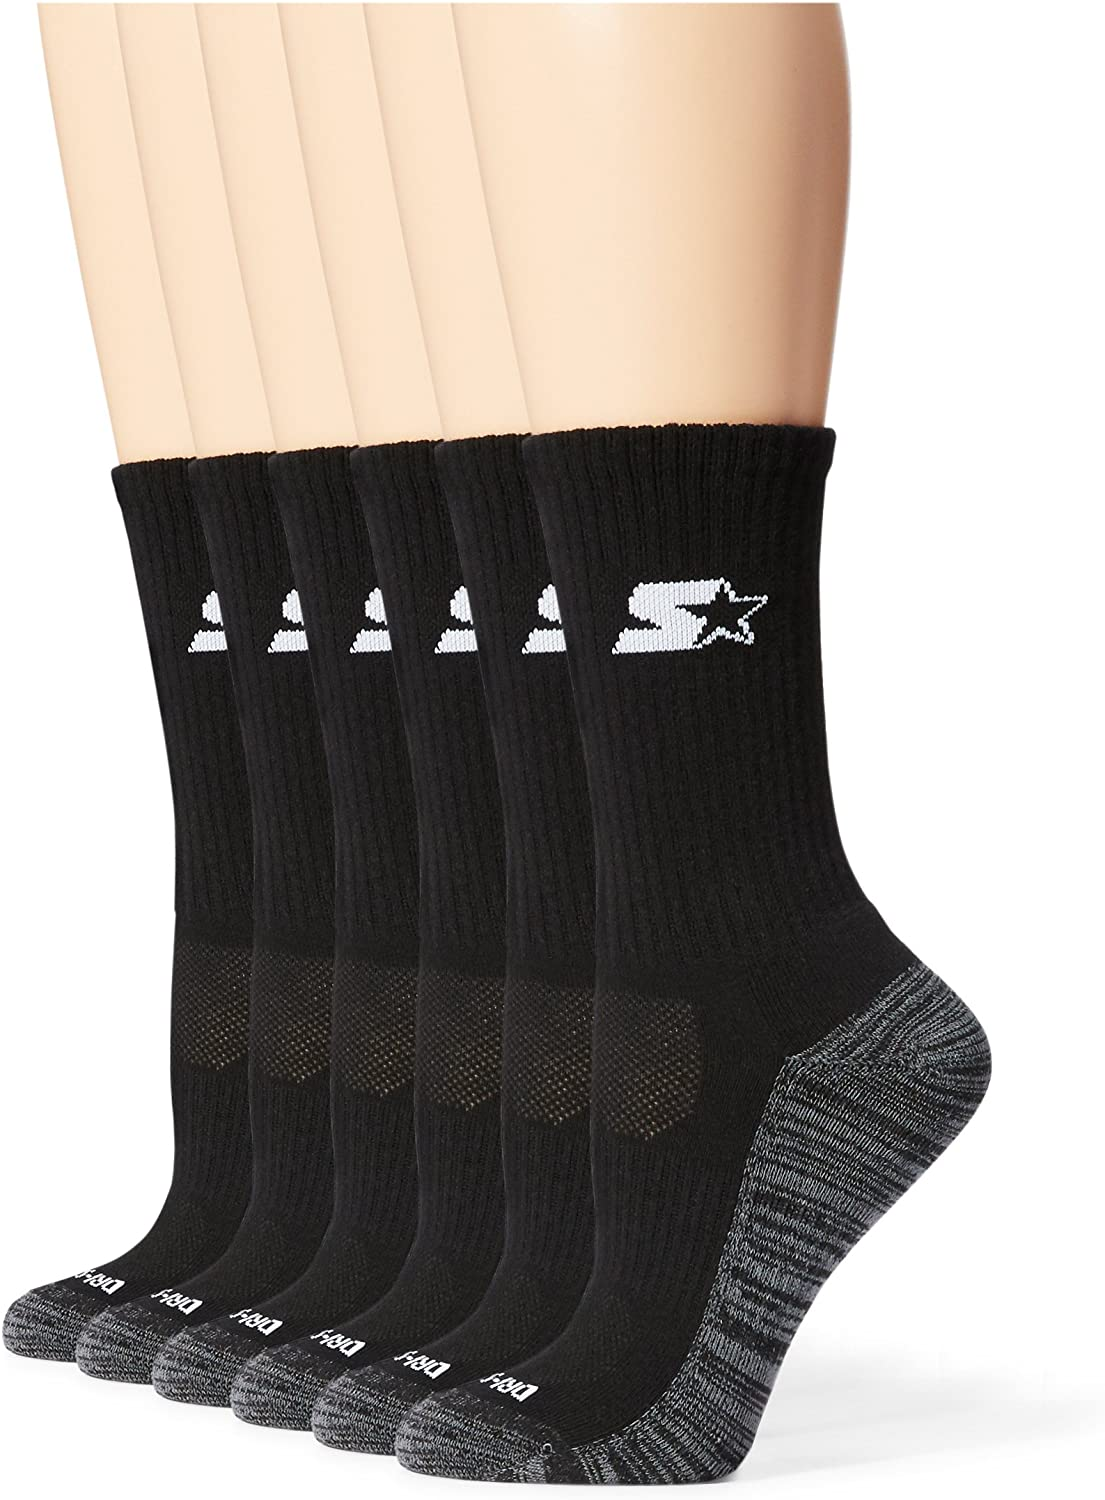 Exclusive Starter Womens 6-Pack Athletic Crew Socks